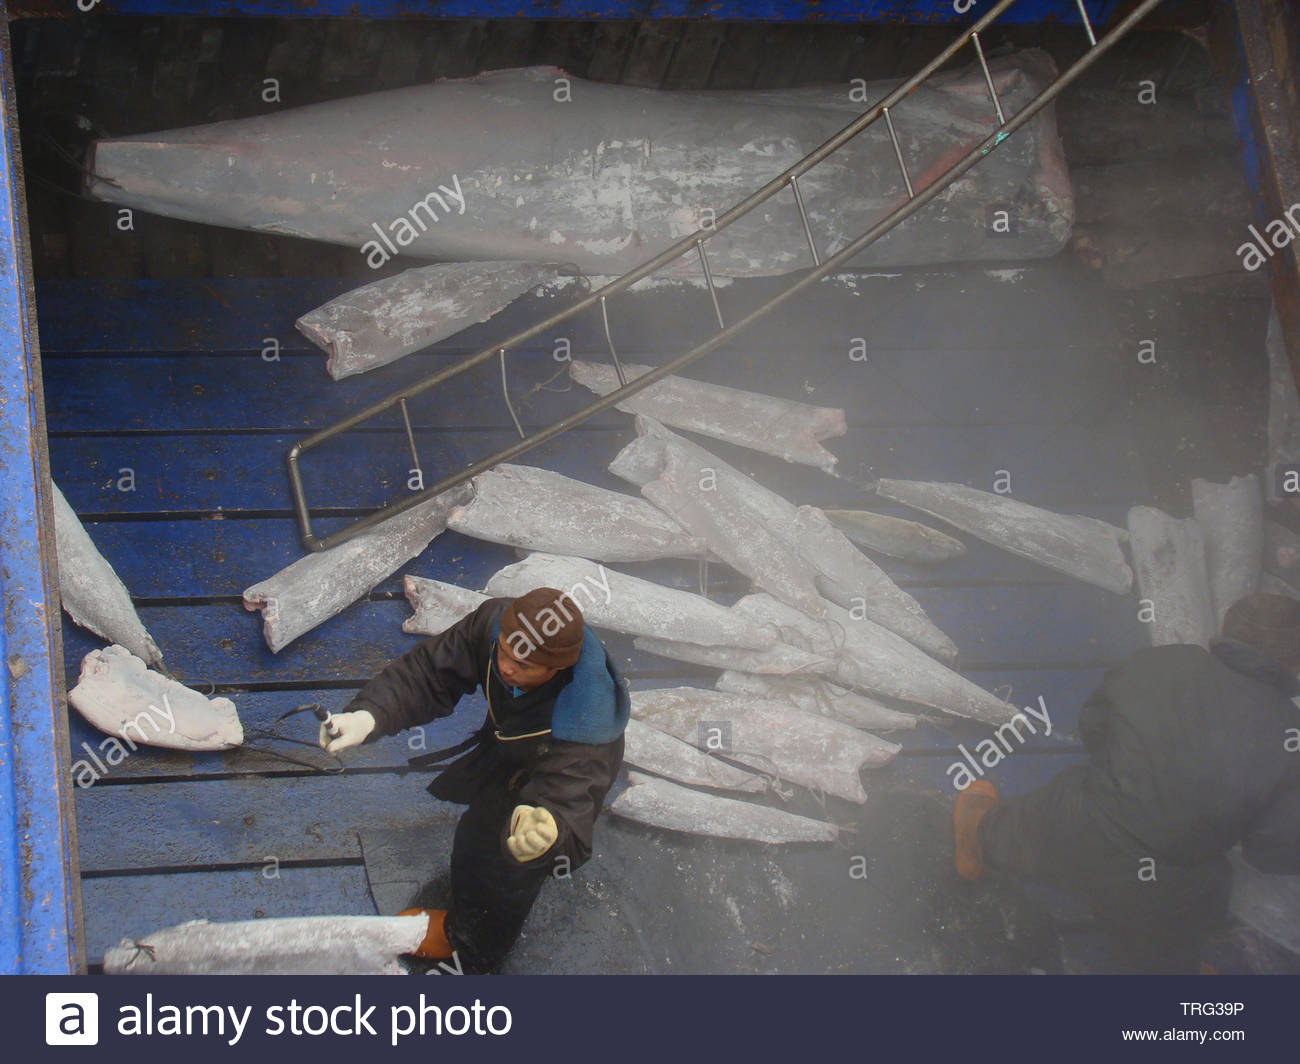 The mixed nationality crew of a Taiwanese-flagged tuna mothership works in the fish hold storing newly transshipped batches of frozen fish. - Stock Image